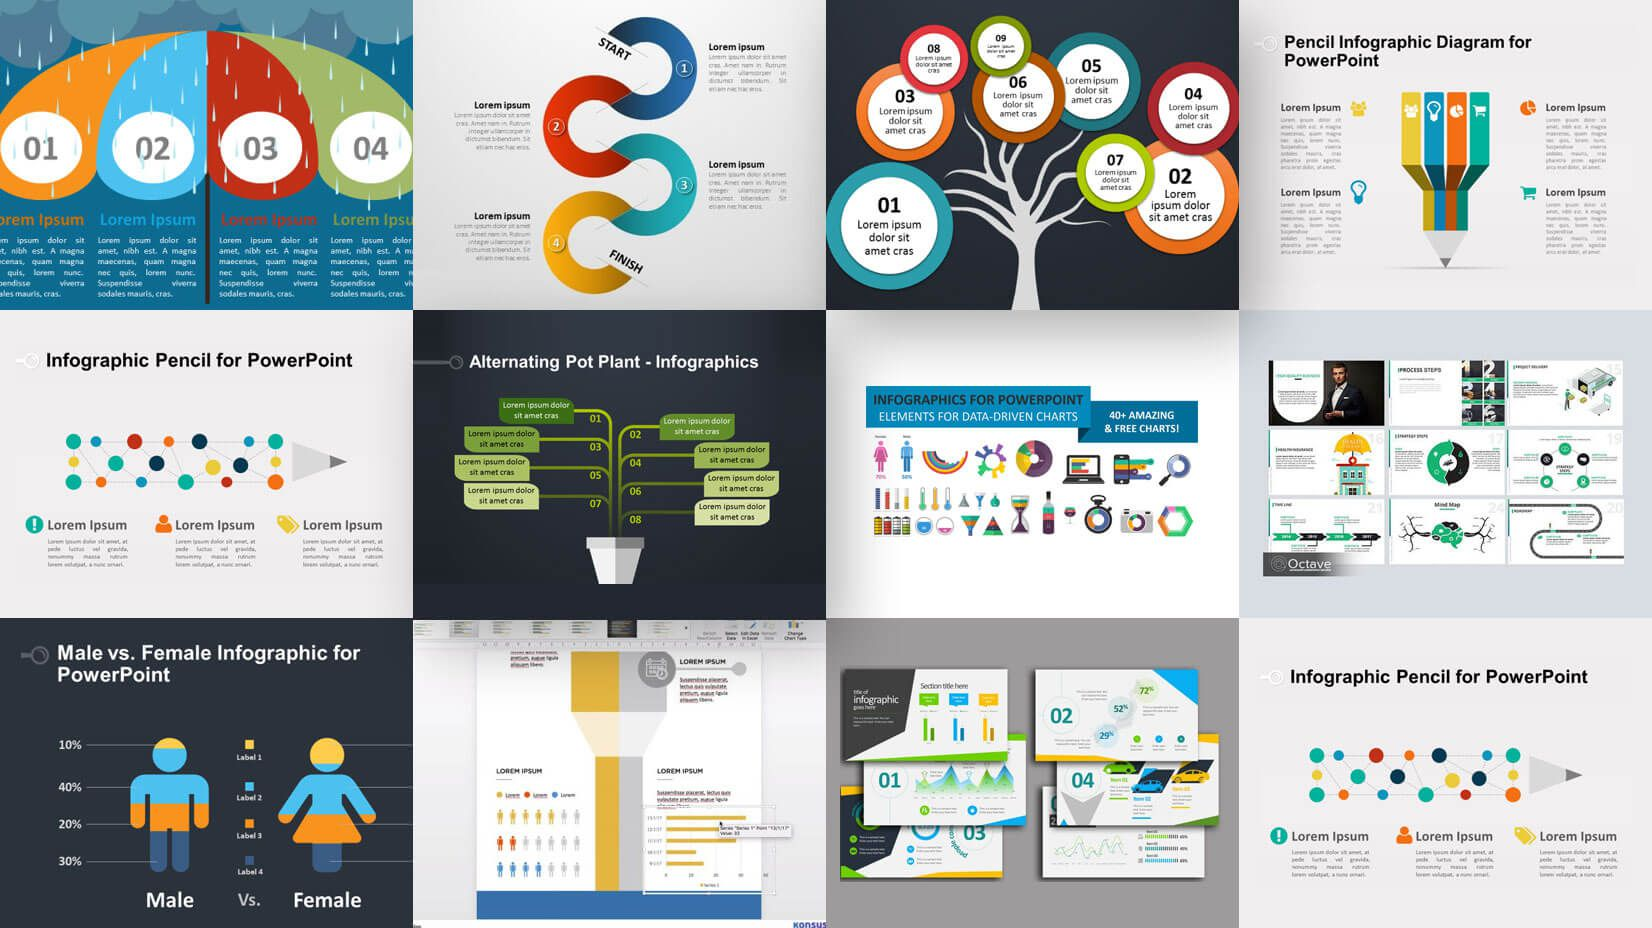 002 Staggering Power Point Presentation Template Free High Resolution  Powerpoint Layout Download 2019 Modern BusinesFull